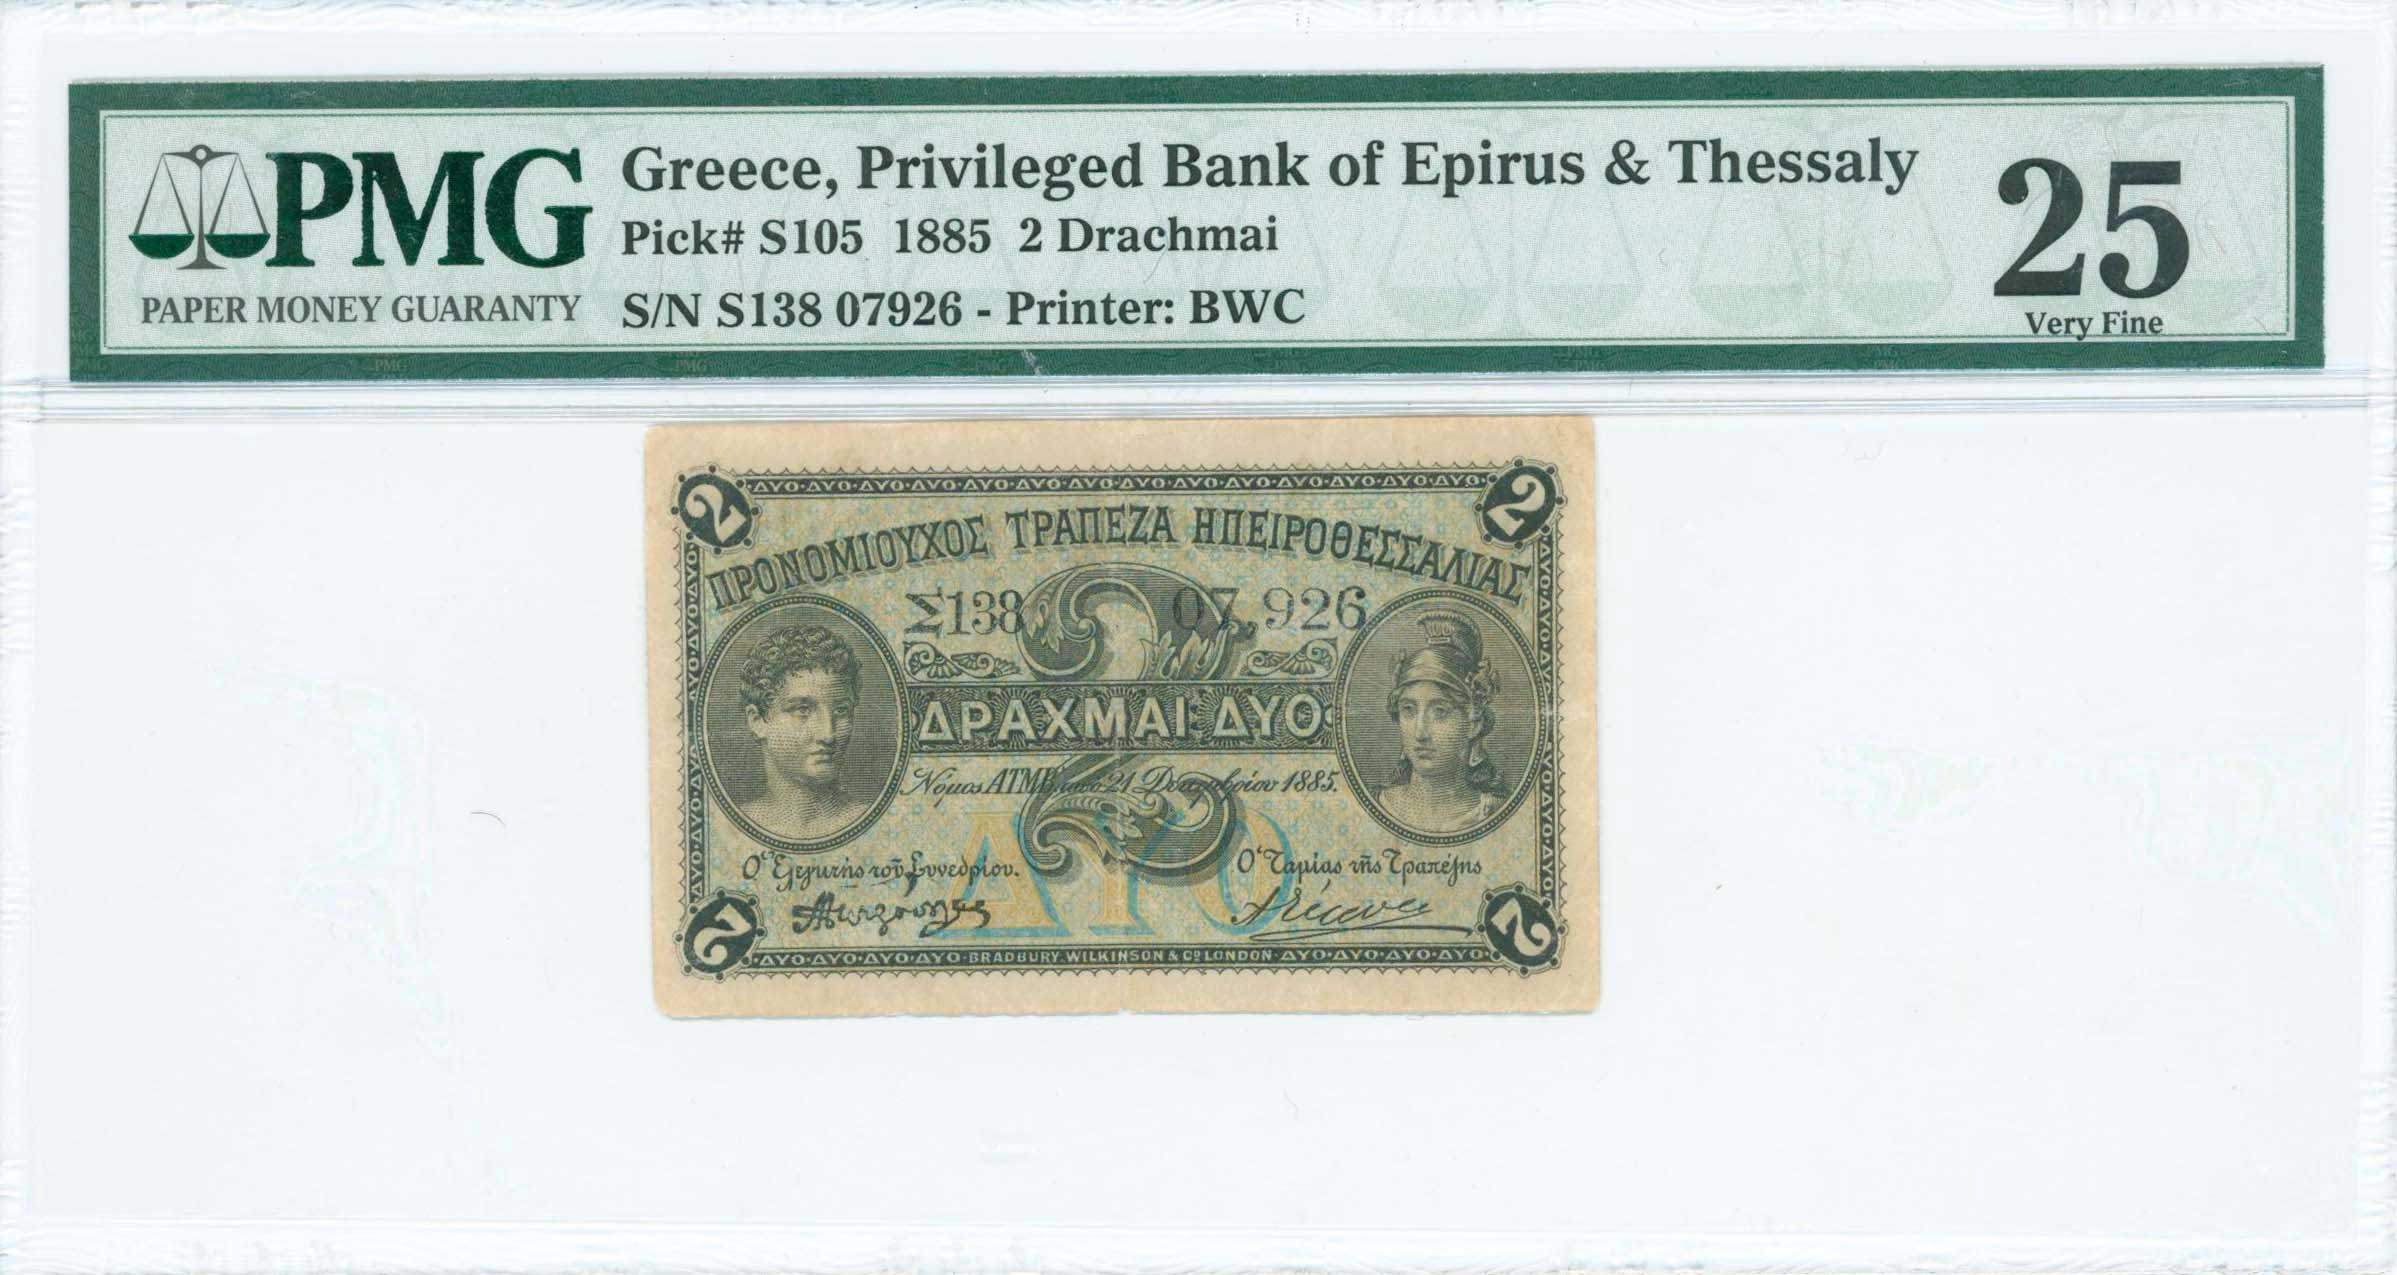 Lot 6444 - -  PAPER MONEY - BANKNOTES PRIVILEGED BANK OF EPIROTHESSALY -  A. Karamitsos Public & Live Internet Auction 671 (Part A)